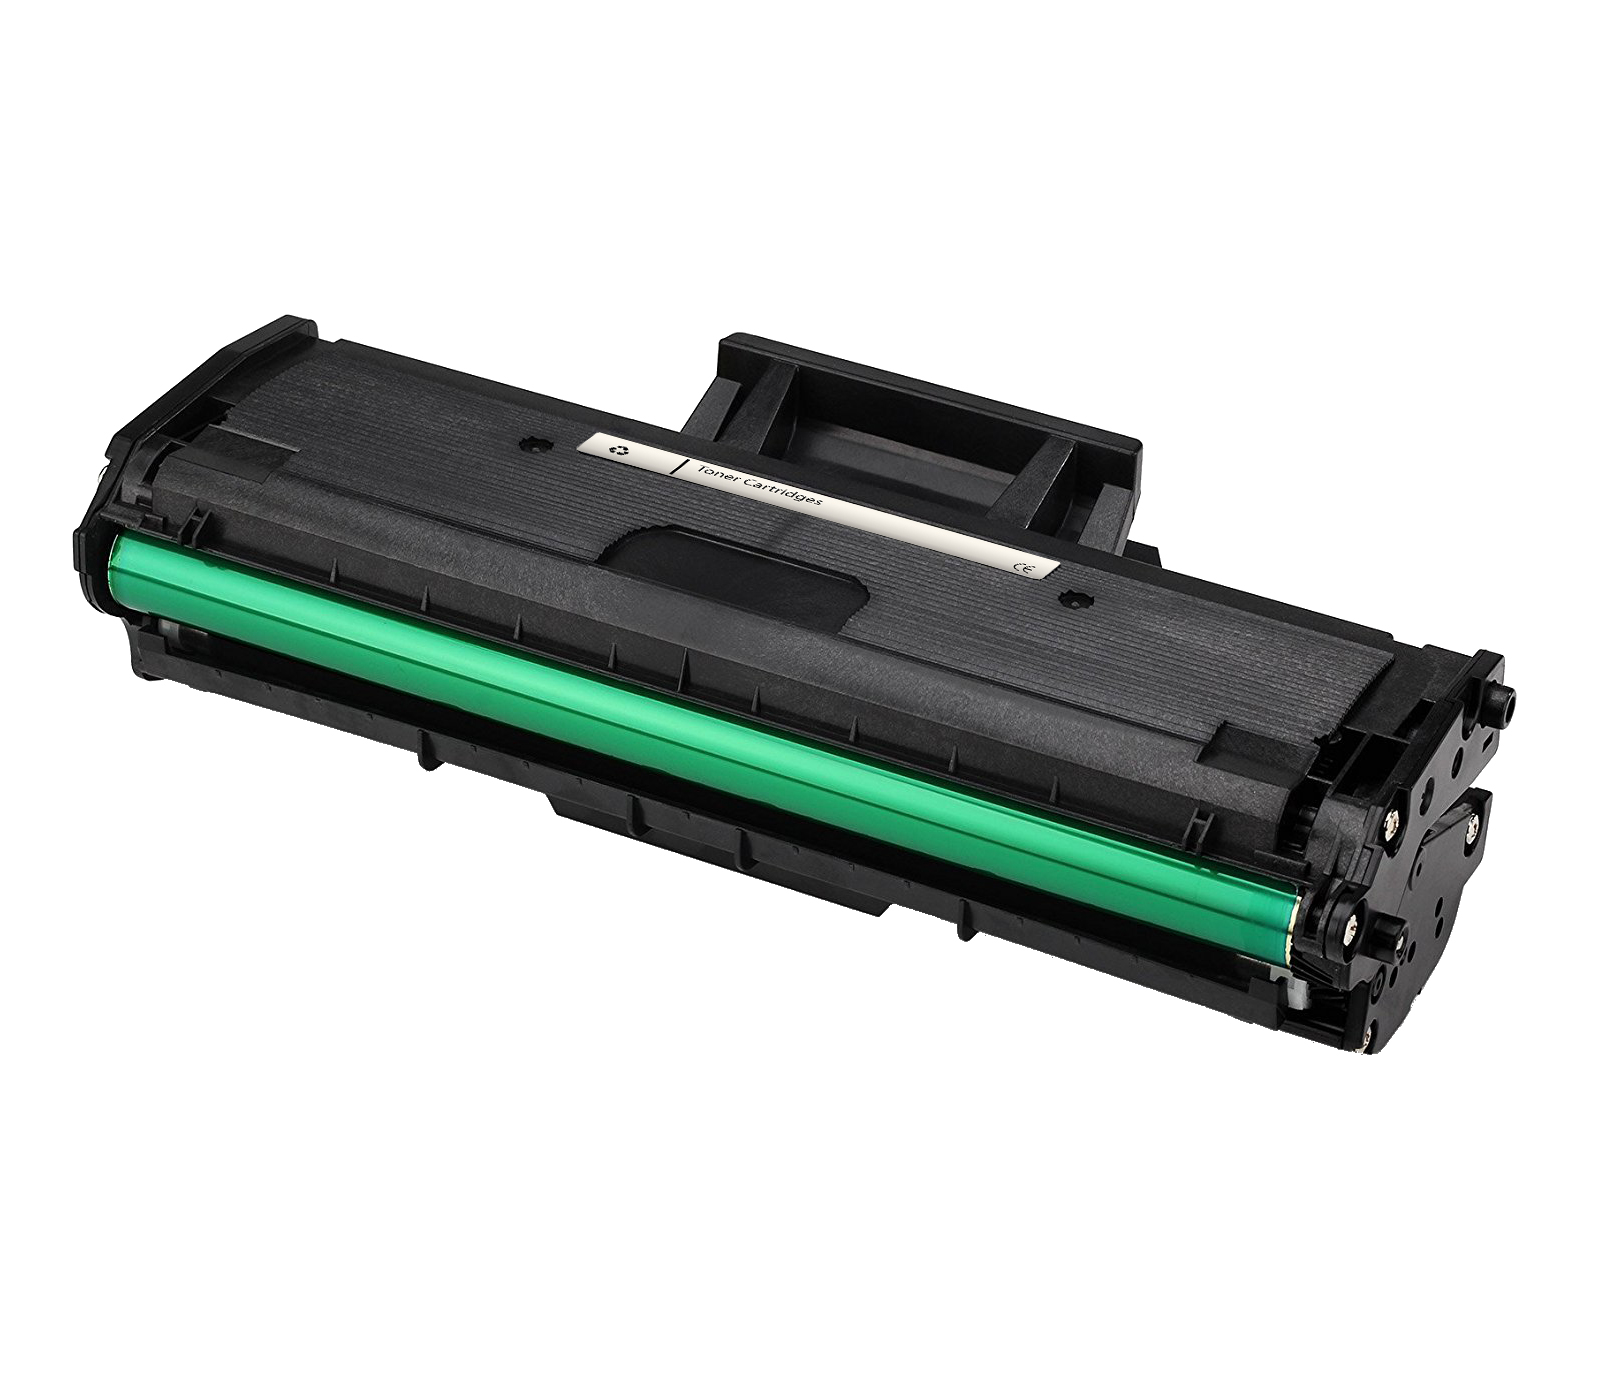 mlt d111l toner cartridge black for samsung xpress m2020w m2070w m2070fw printer ebay. Black Bedroom Furniture Sets. Home Design Ideas